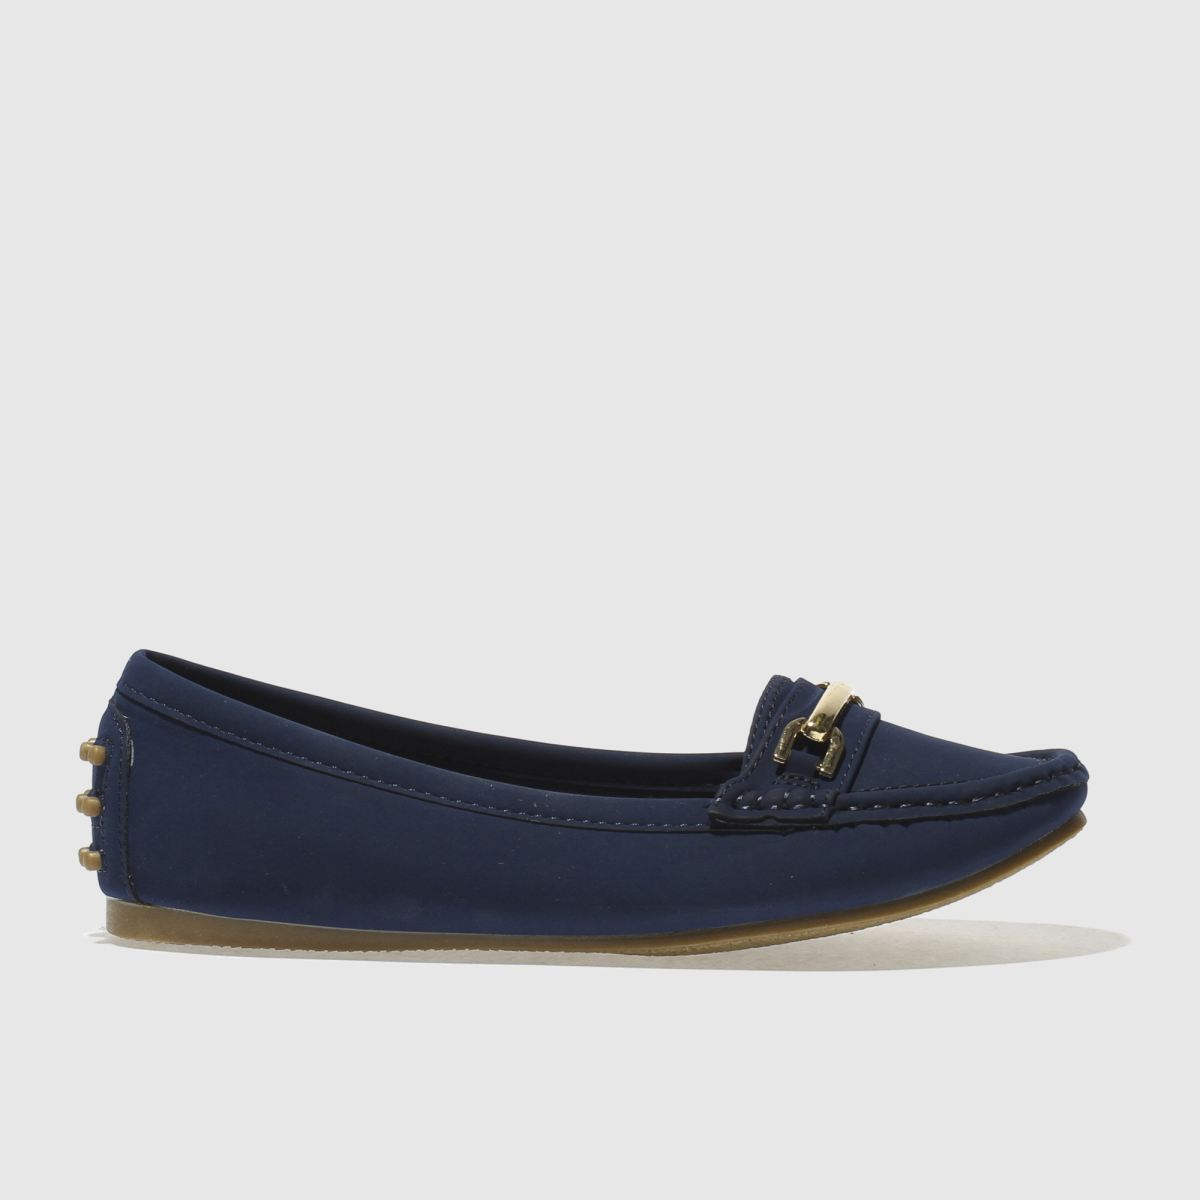 schuh navy speed boat flat shoes